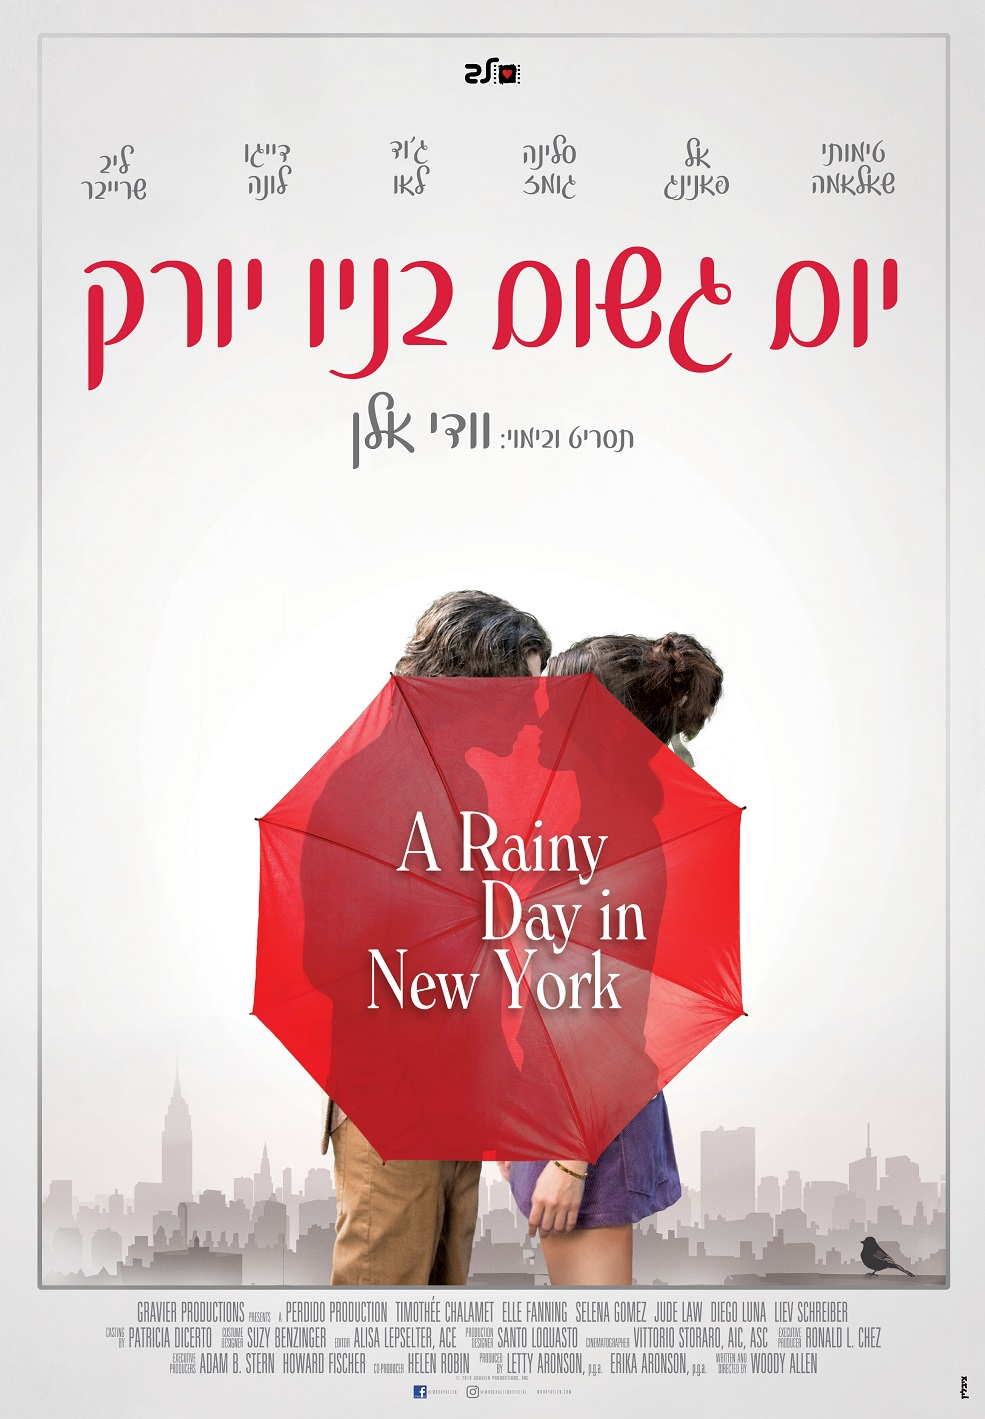 A Rainy Day in New York - maternity leave